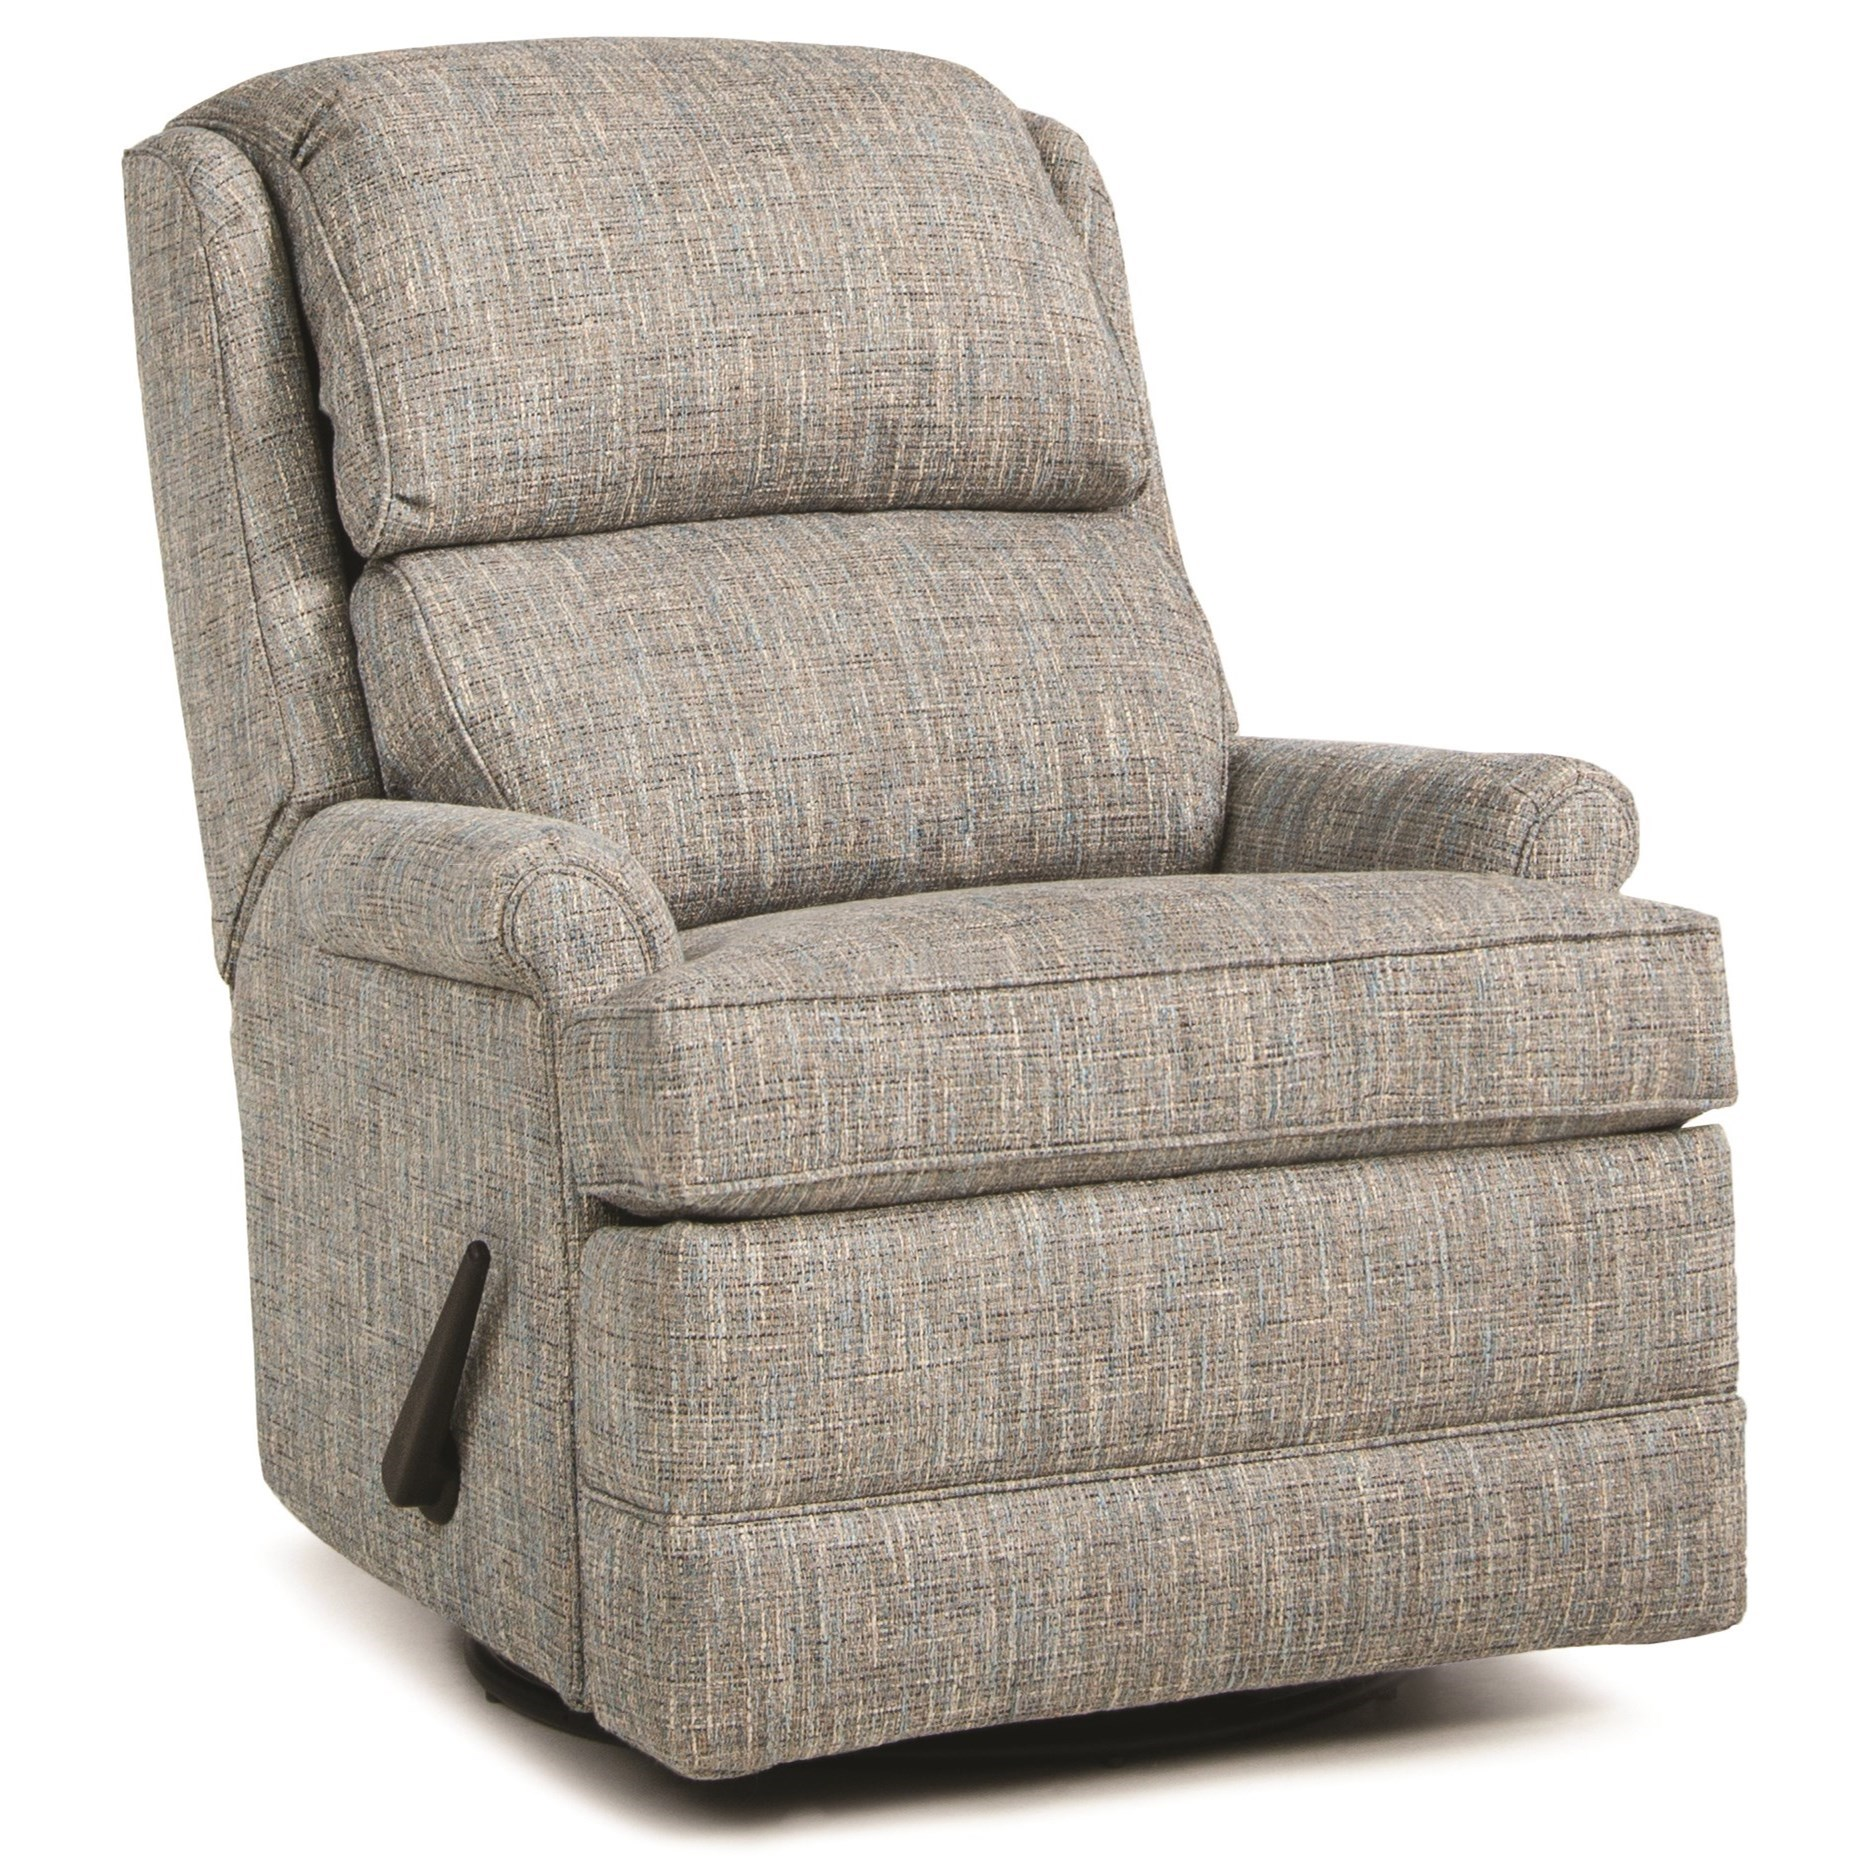 707 Swivel Glider Recliner by Smith Brothers at Pilgrim Furniture City